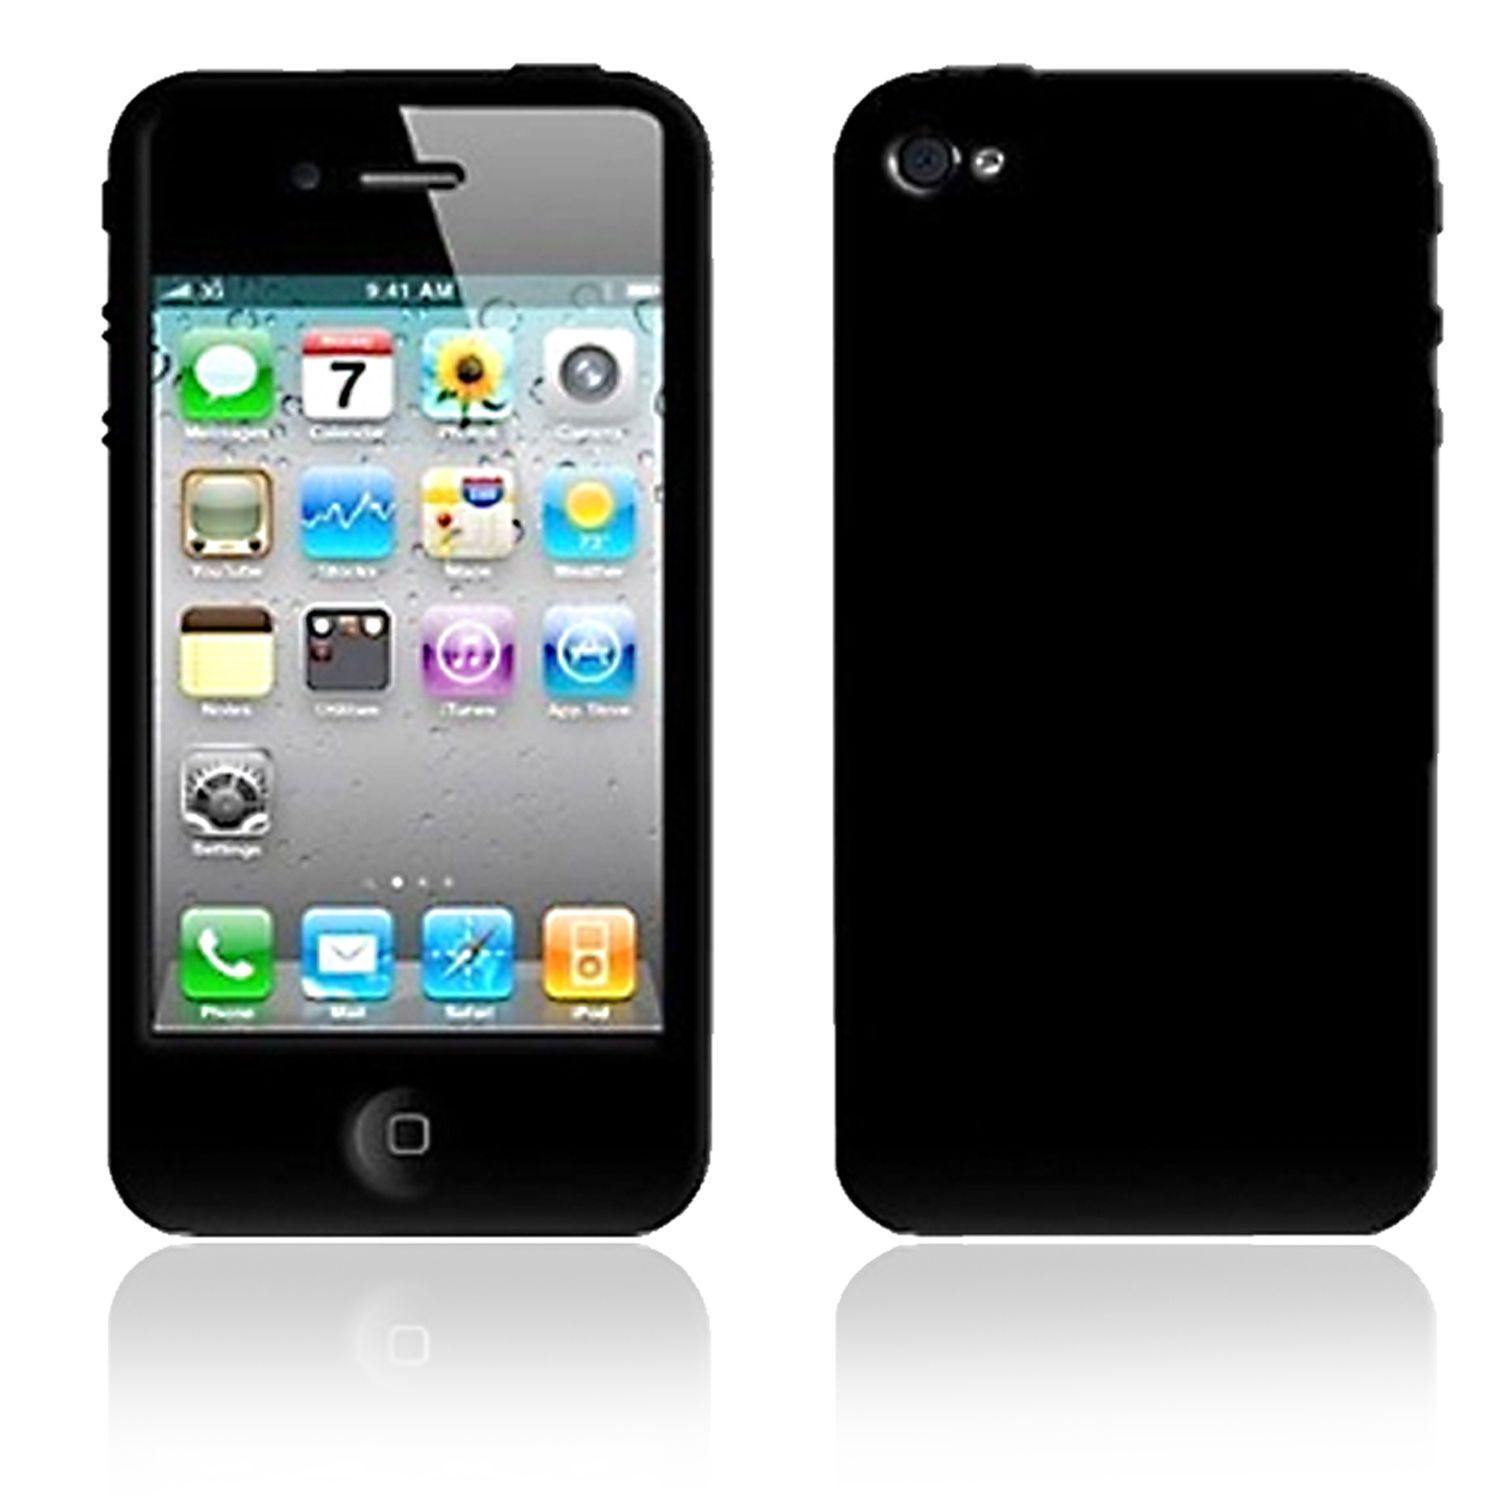 Black Silicone Case for iPhone 4/4S - Uk Mobile Store